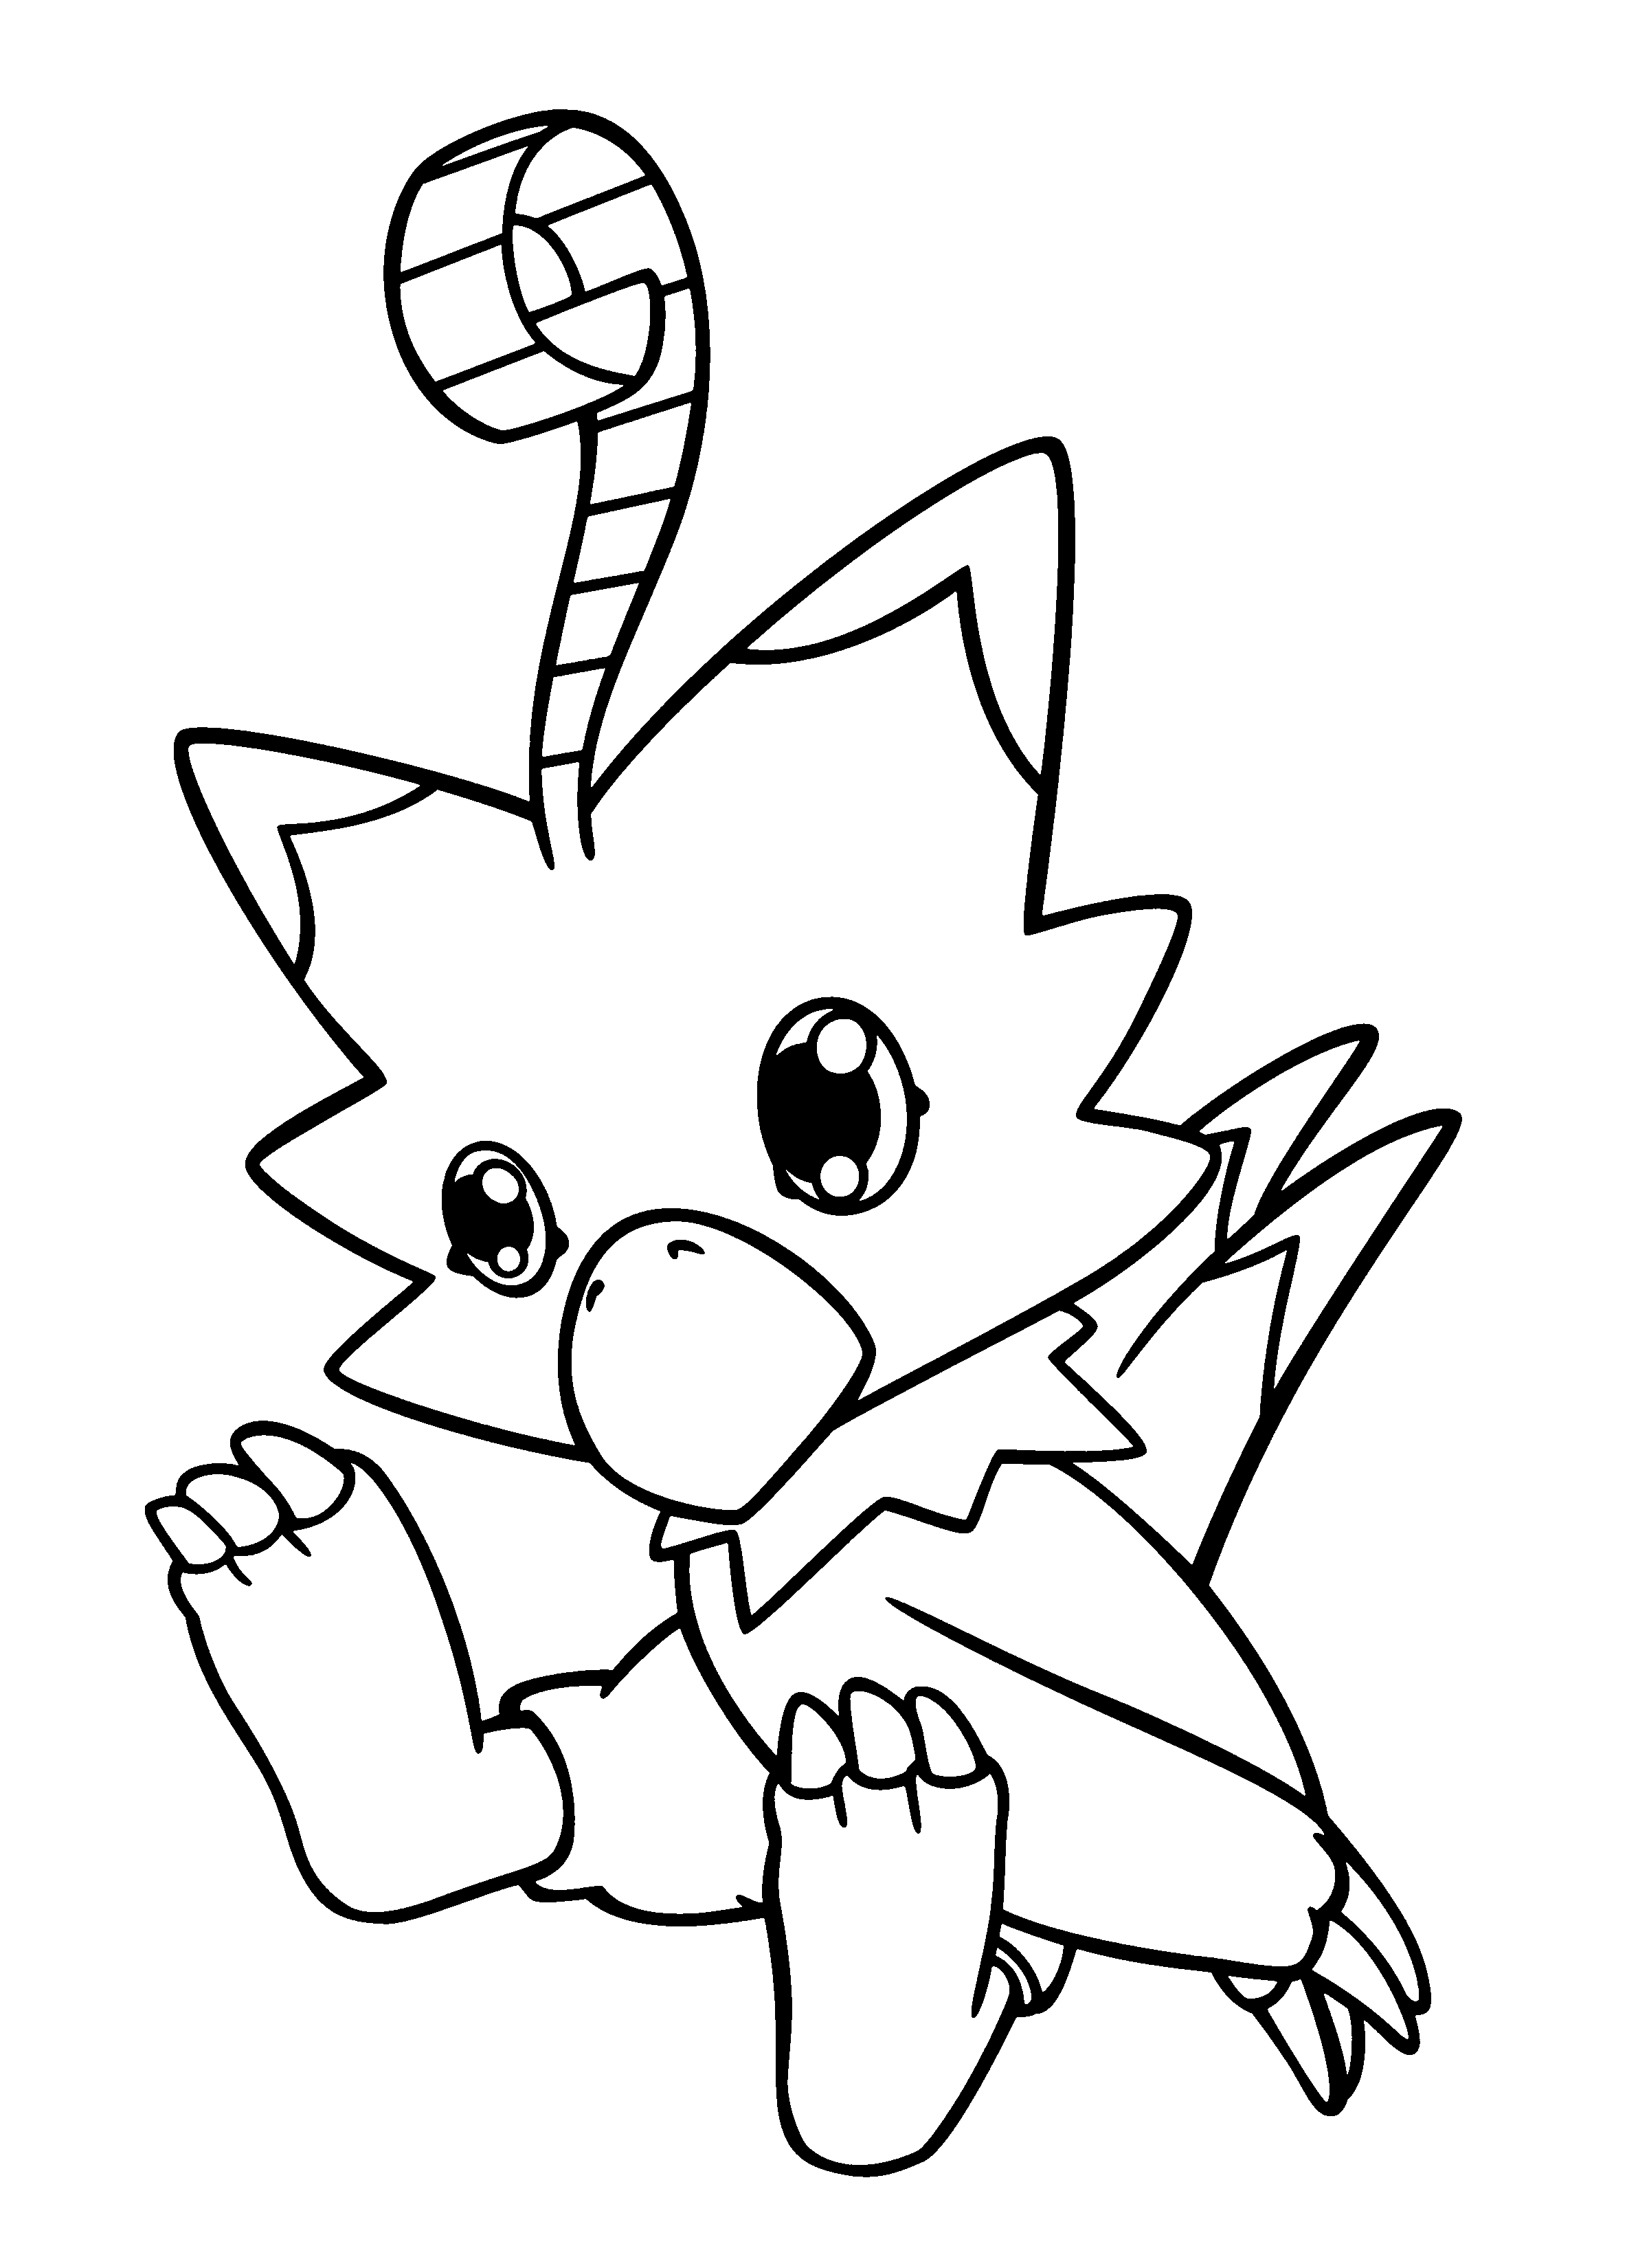 Dark Digimon Coloring Pages Coloring Pages